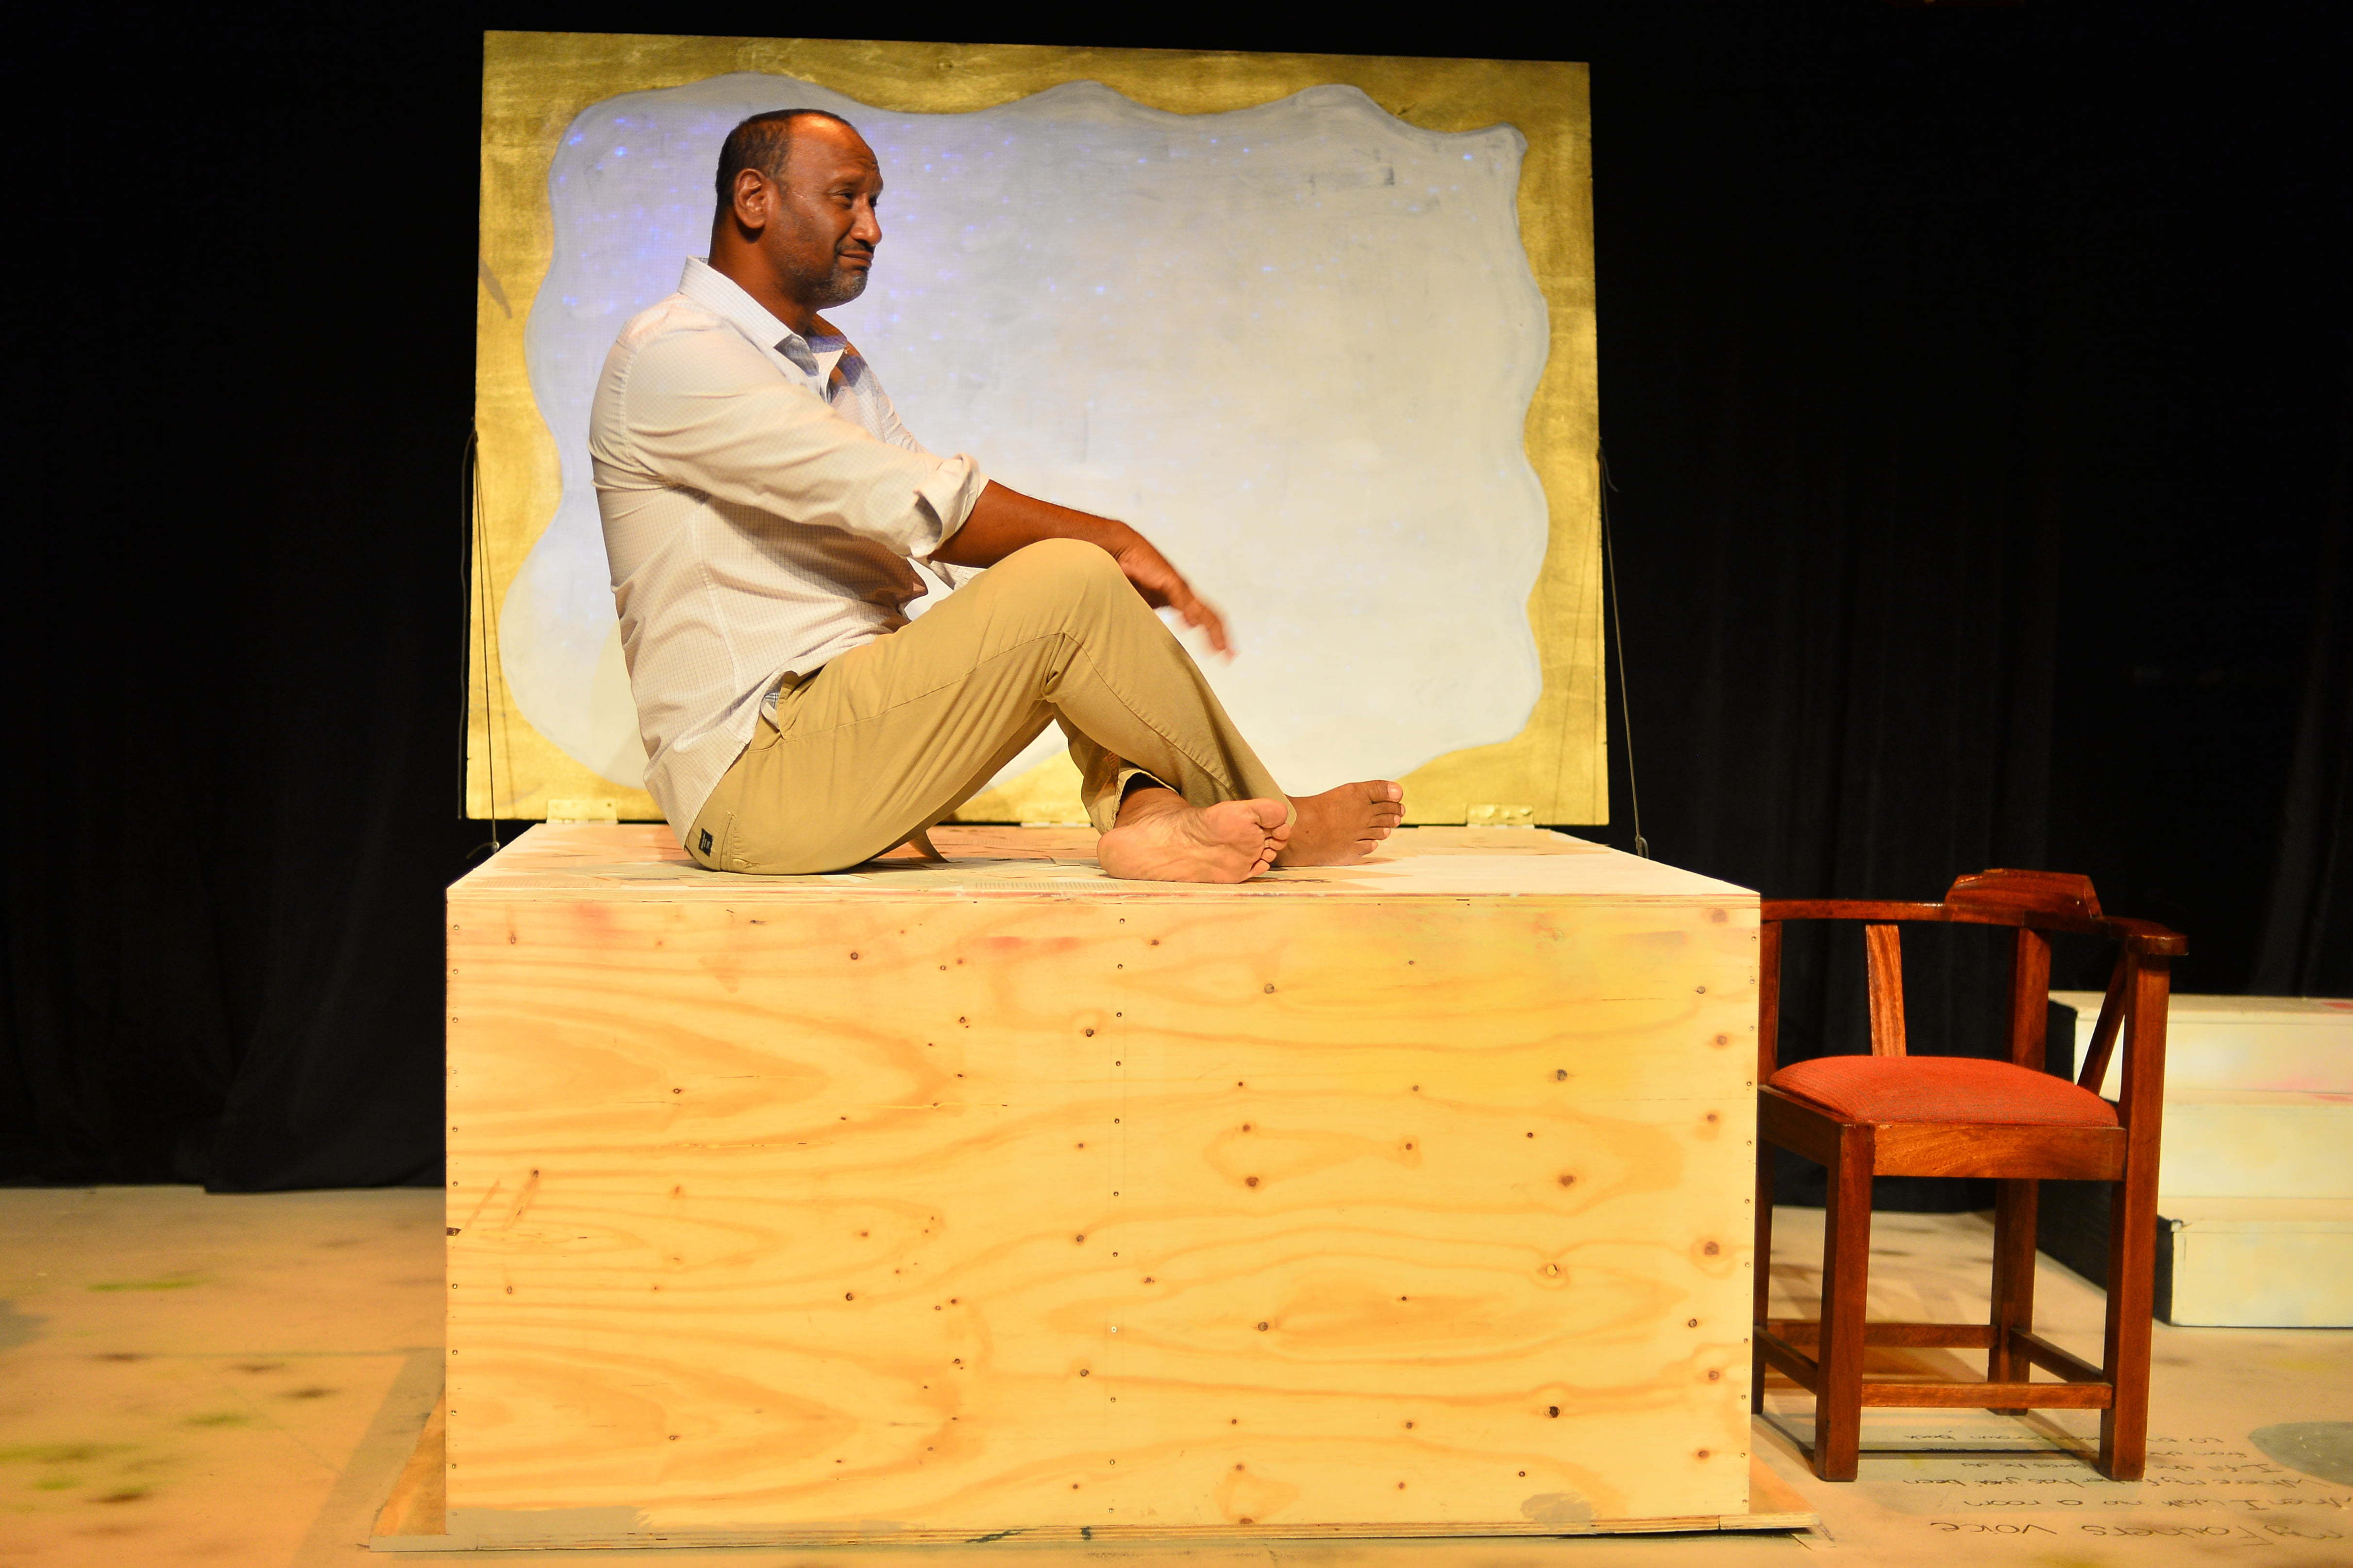 Van Wyk, The Storyteller of Riverlea directed by Christo Davids and performed by Zane Meas